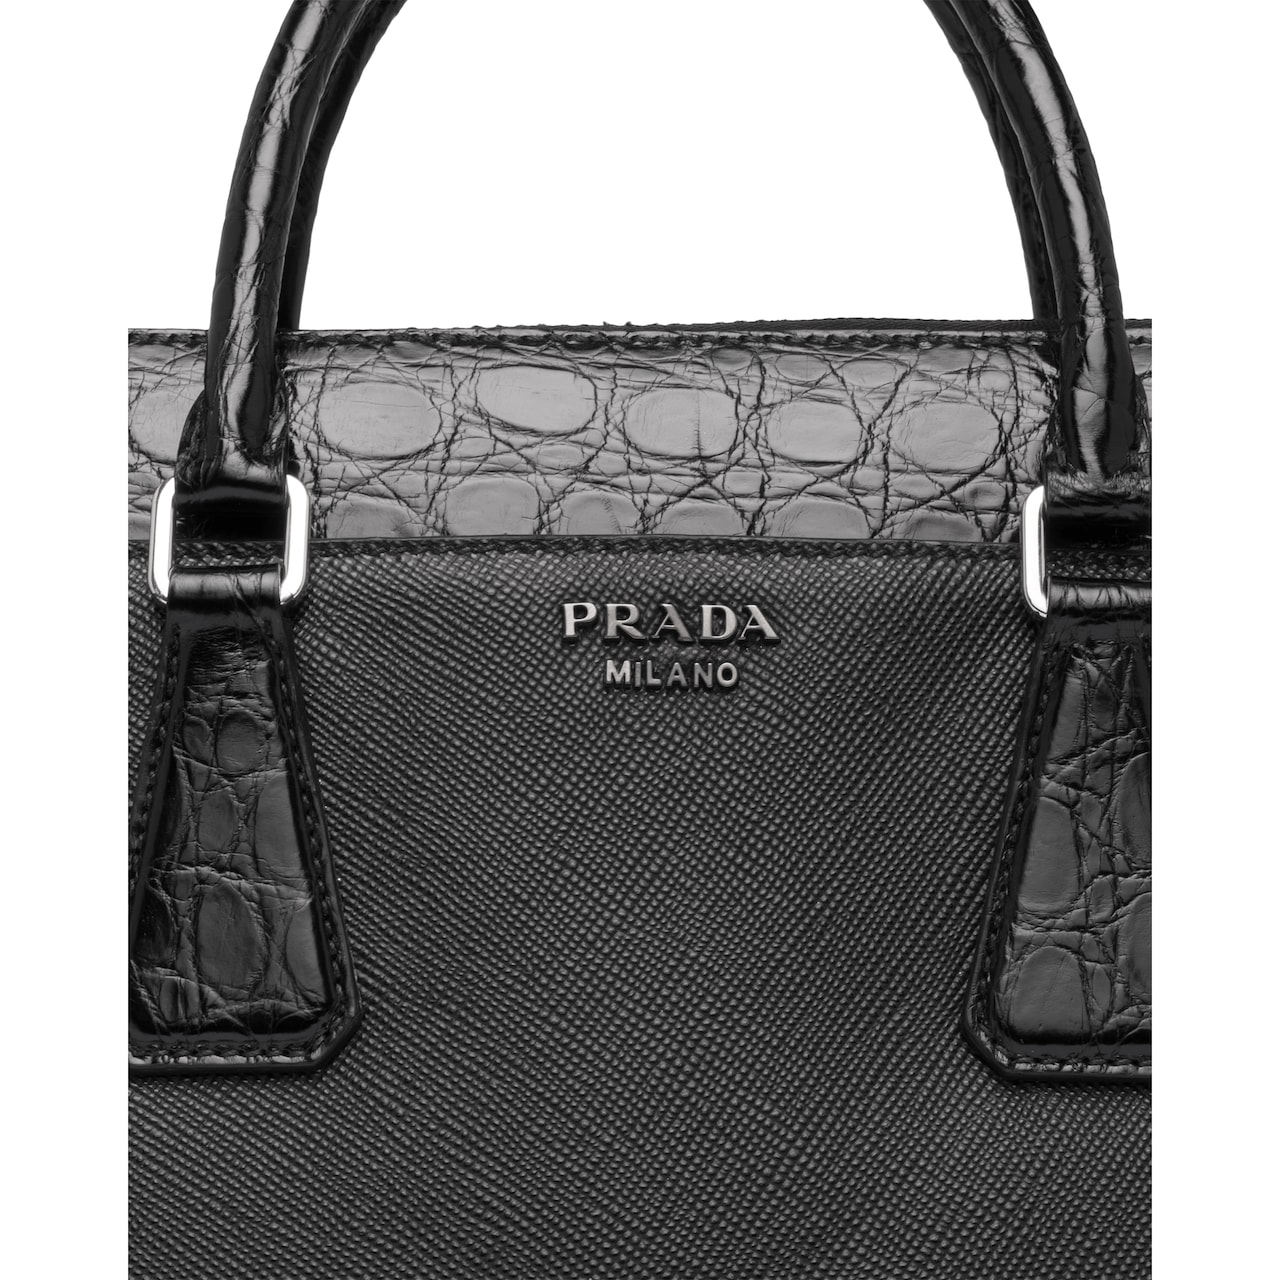 Prada Saffiano leather briefcase 6